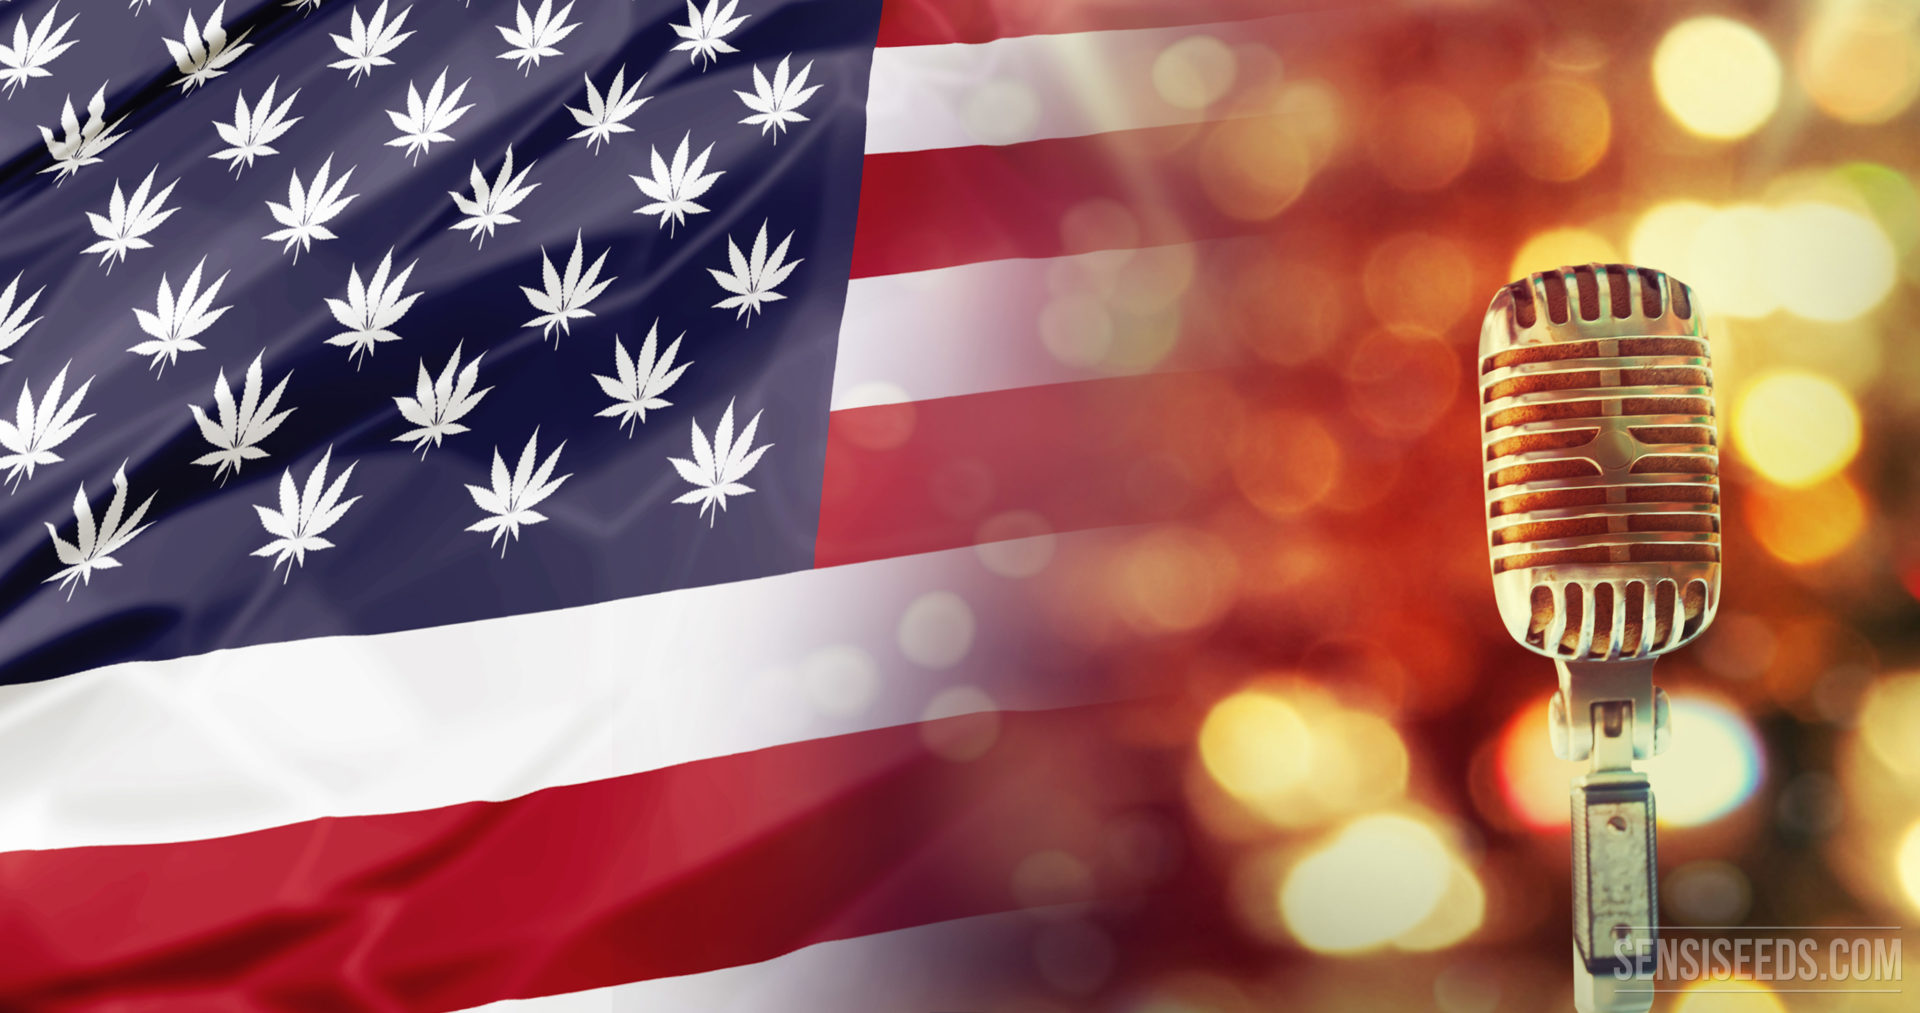 10 of the Top US Cannabis Movers and Shakers